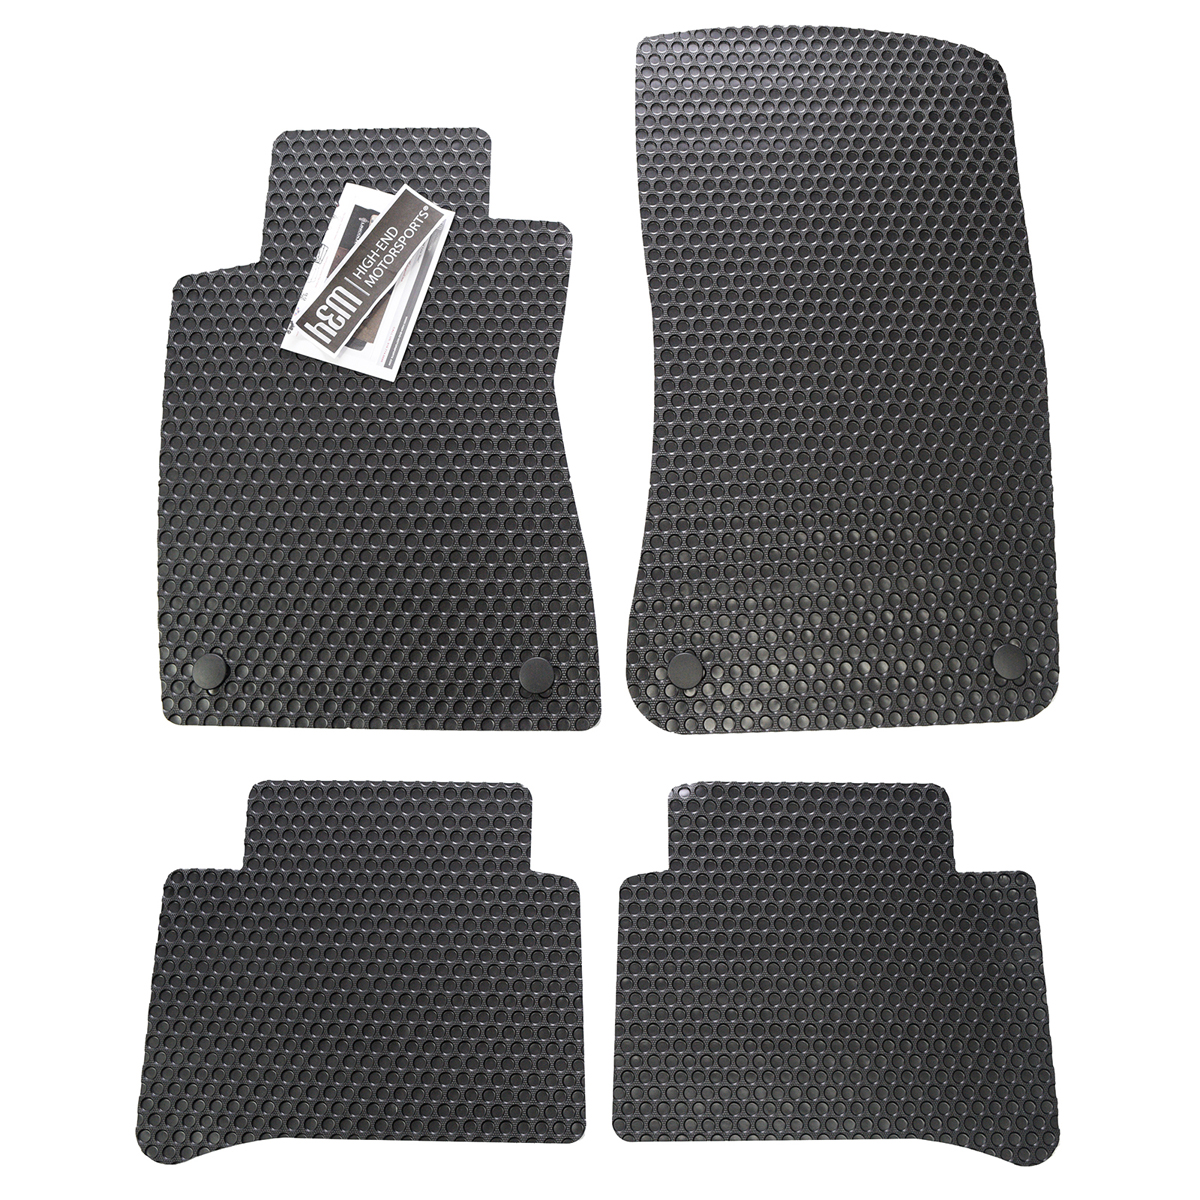 volvo xc70 custom all weather floor mats. Black Bedroom Furniture Sets. Home Design Ideas